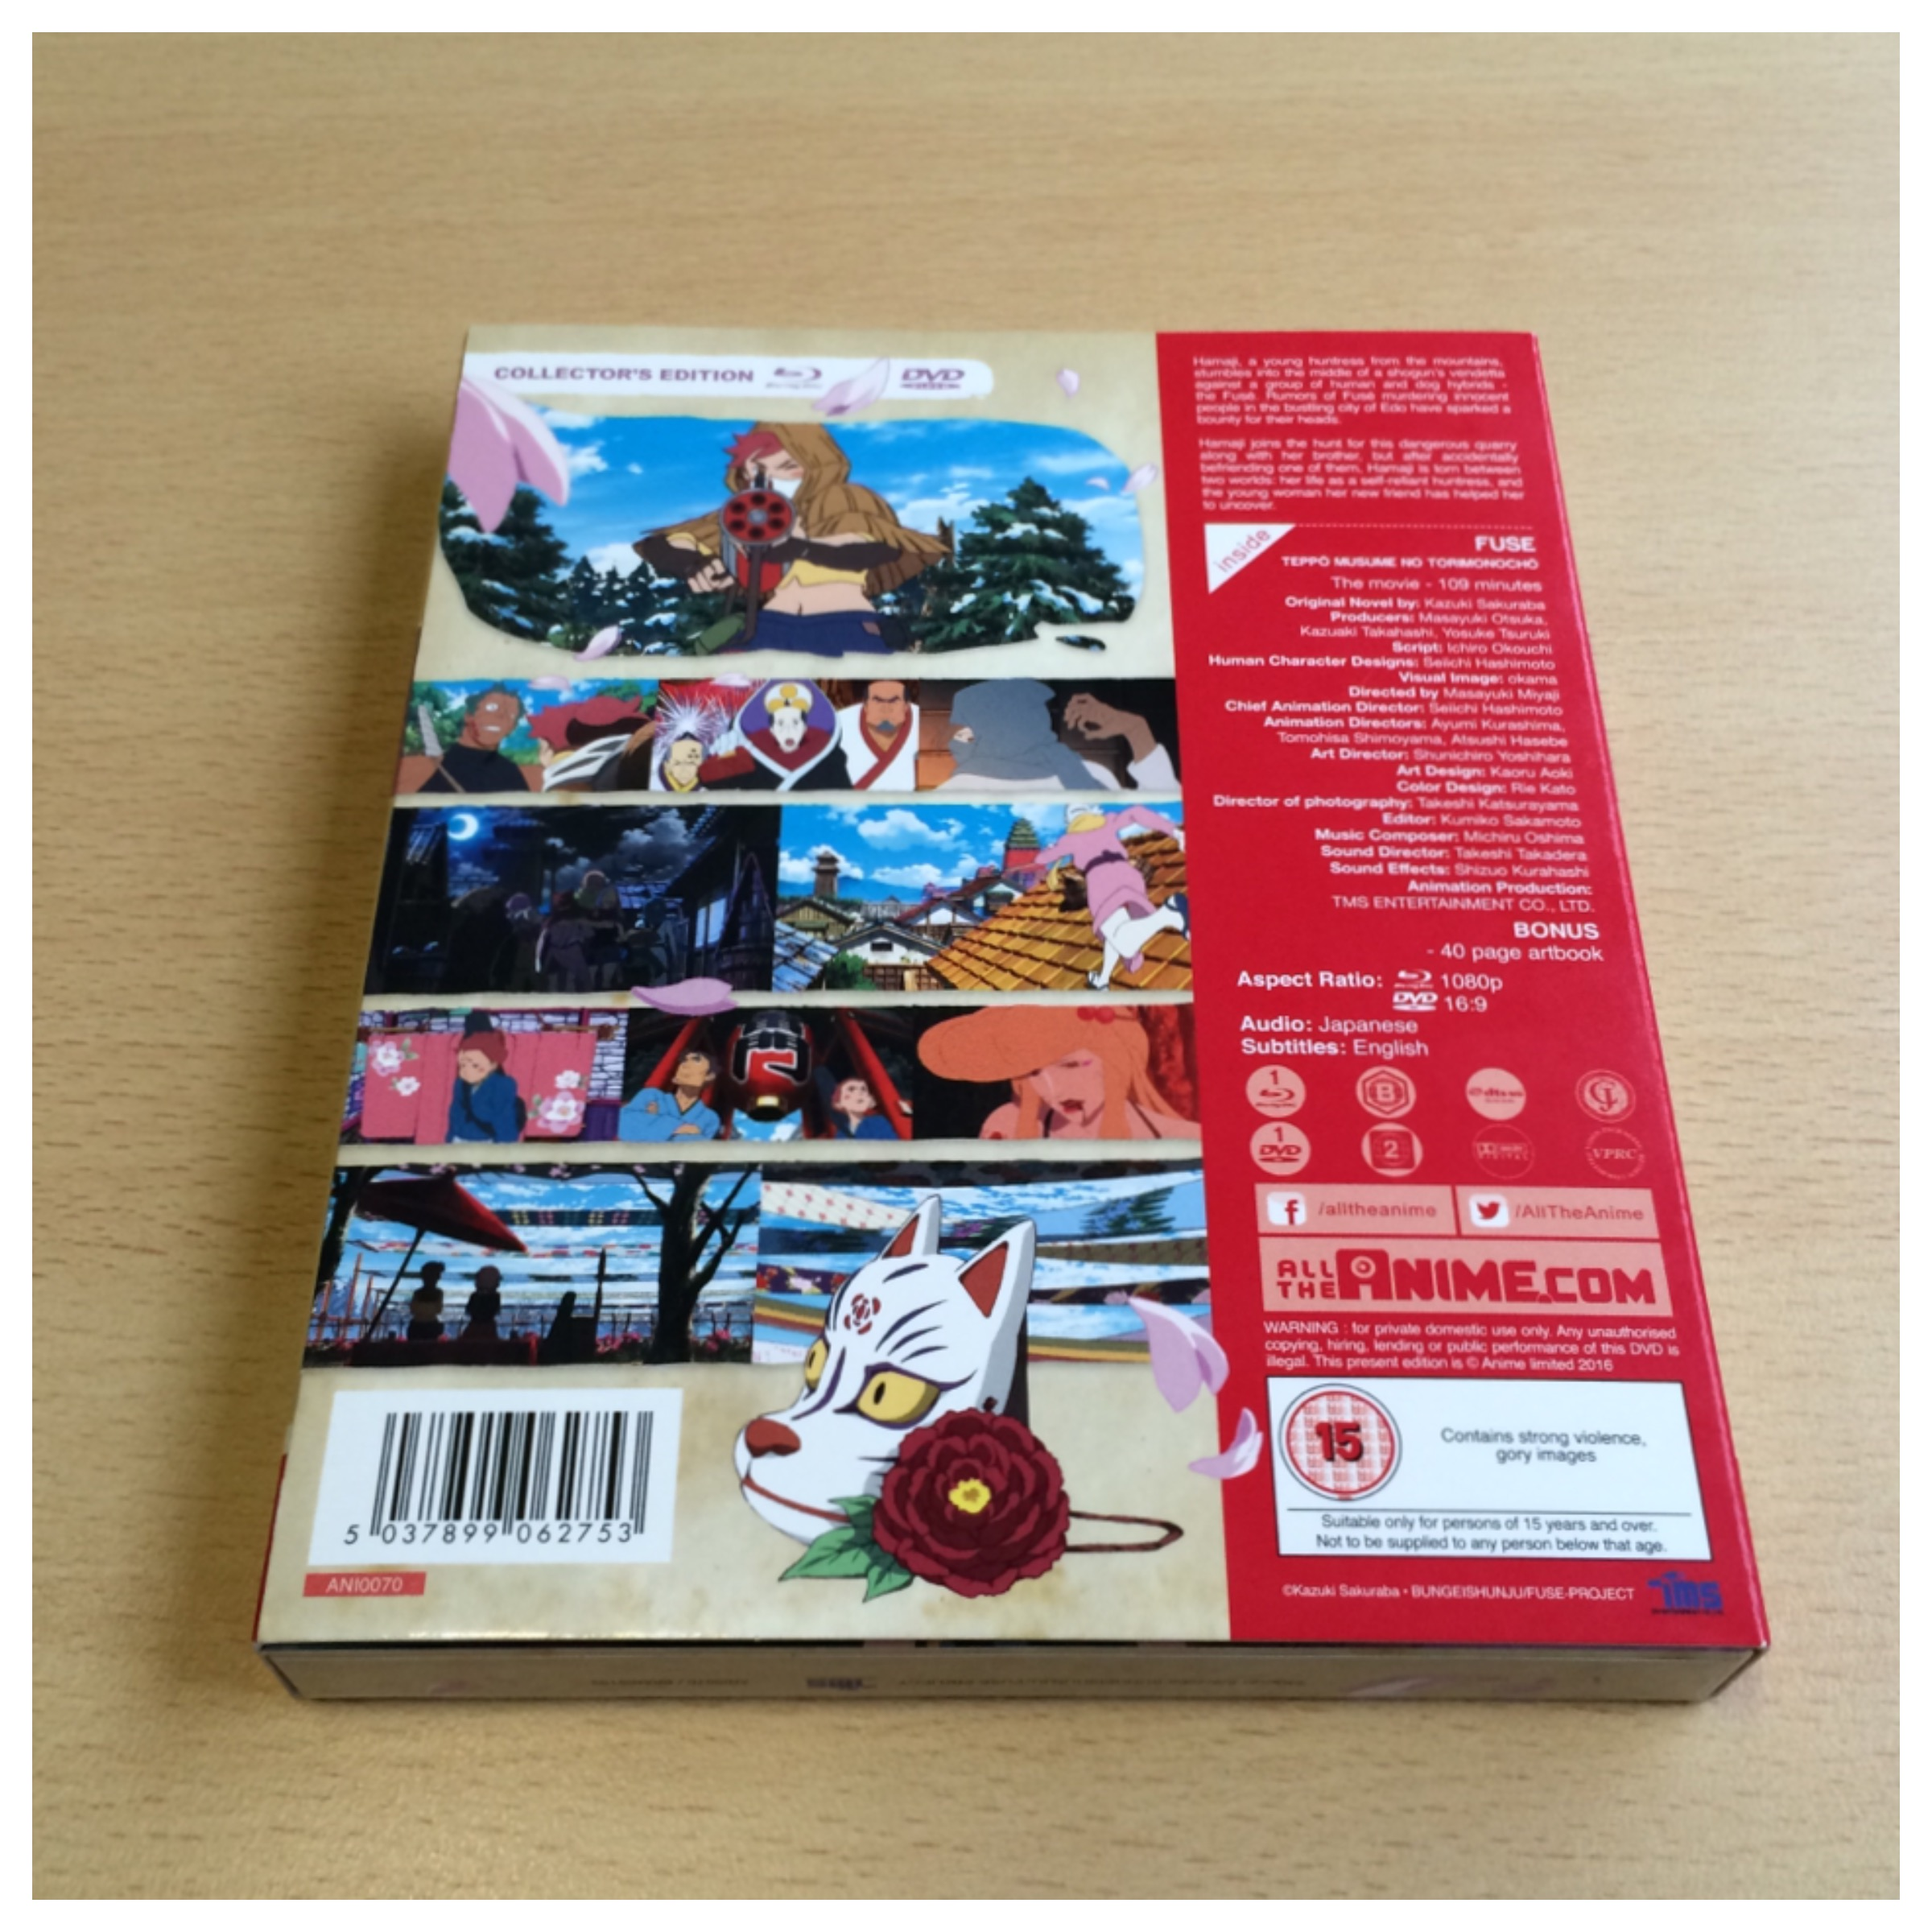 Unboxing Fus Memoirs Of The Hunter Girl All Anime Plastic Fuse Box Now Back With O Card Present But Wrap Removed